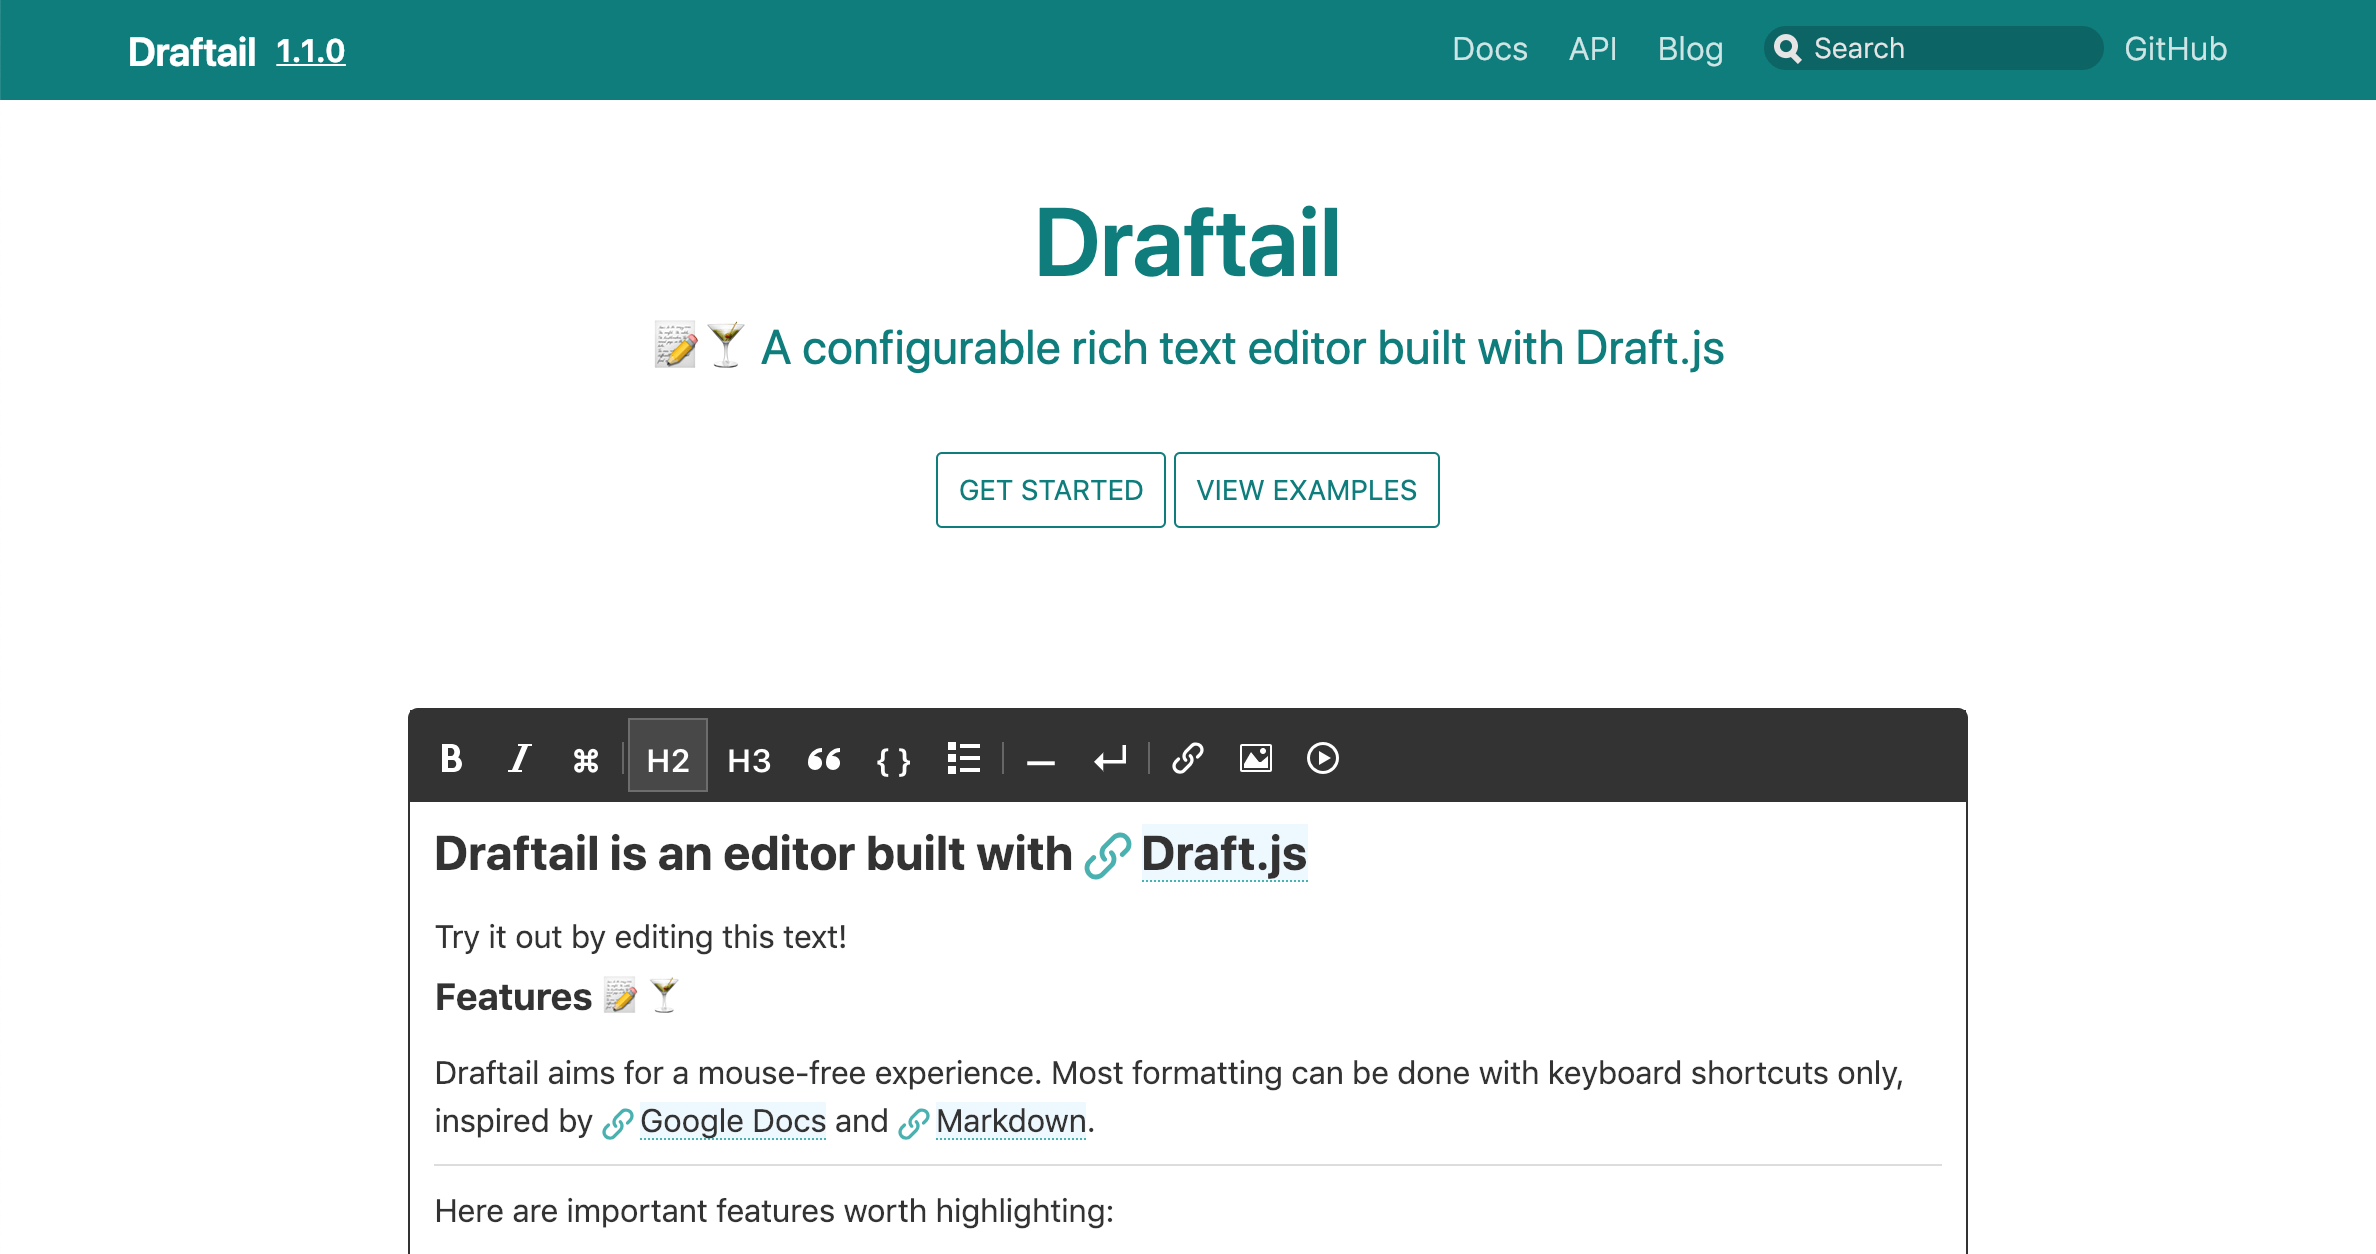 Screenshot of the draftail.org homepage